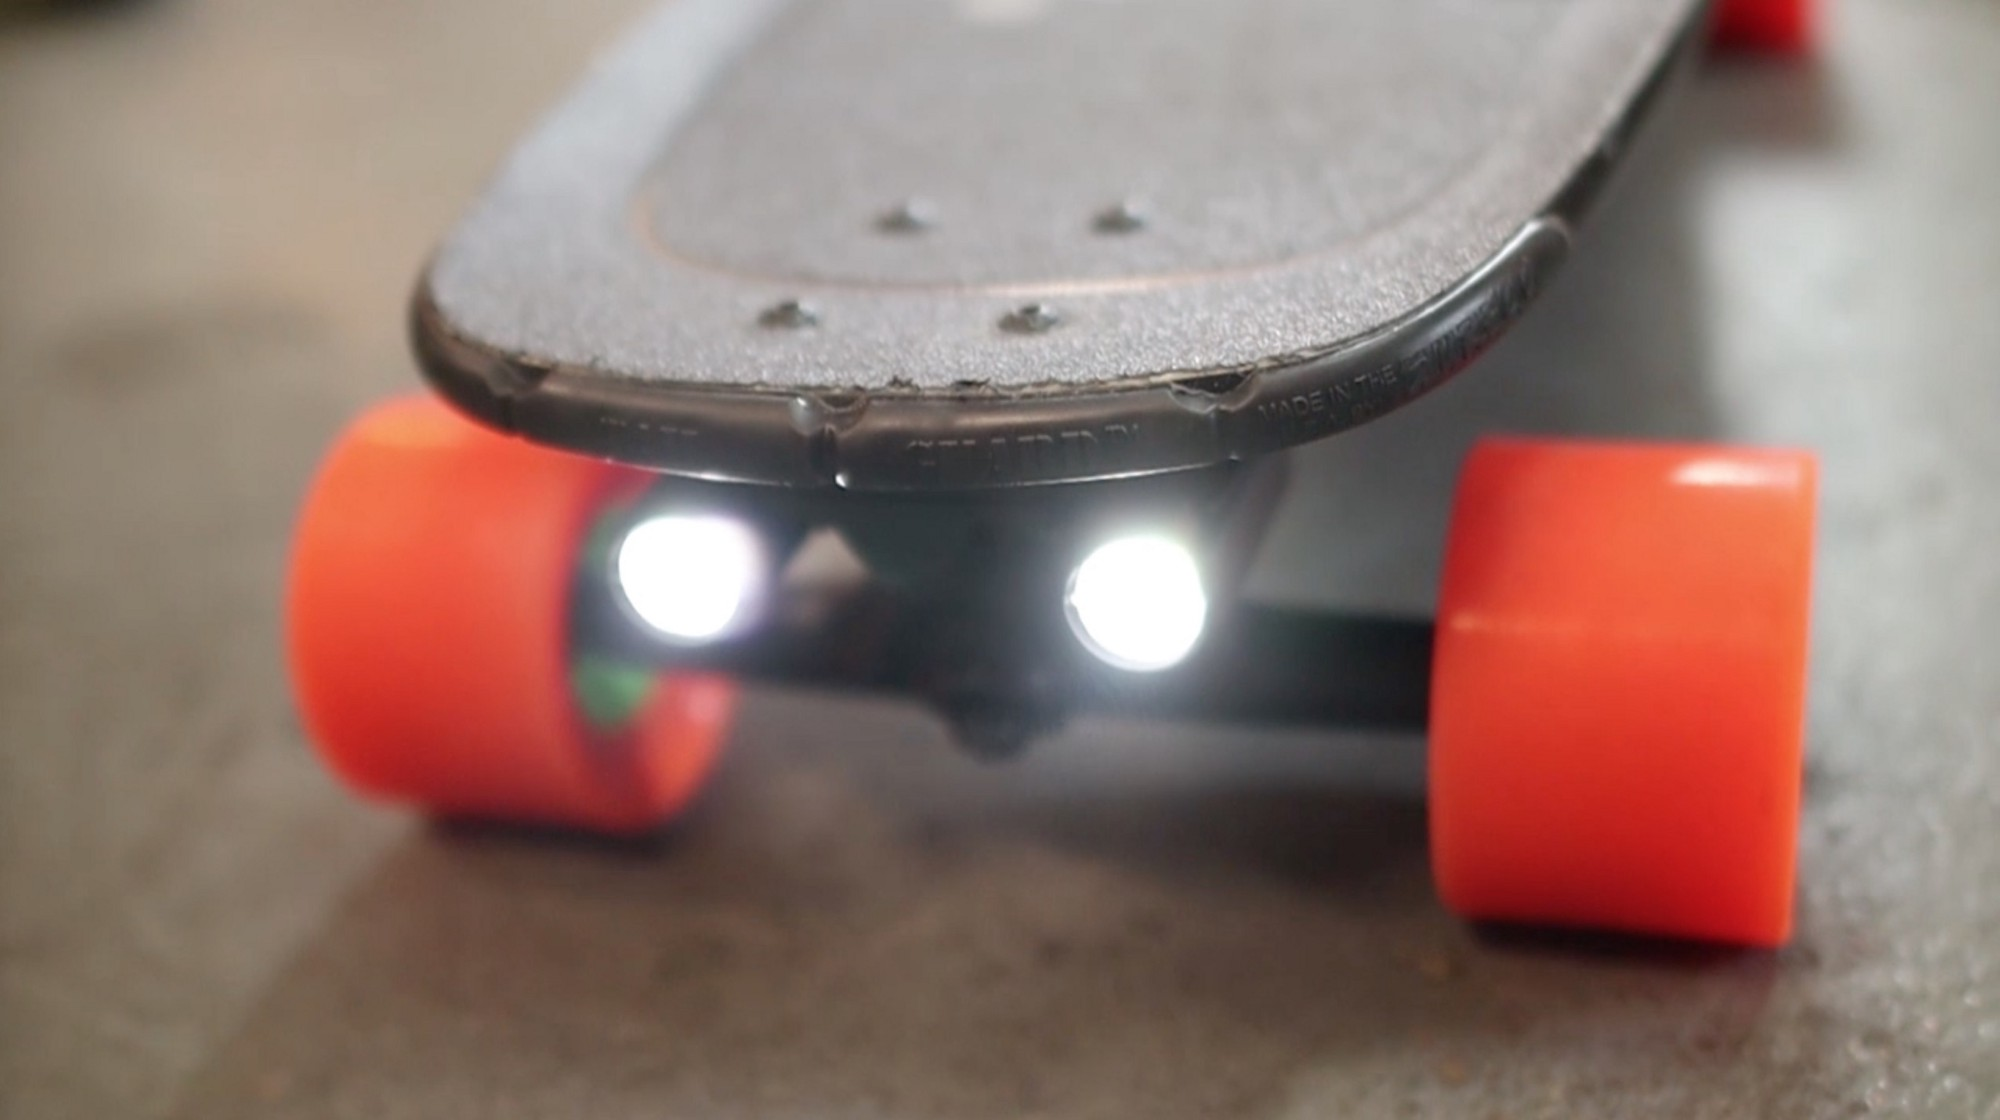 The Best Accessories For Boosted Board Evolve Inboard And More